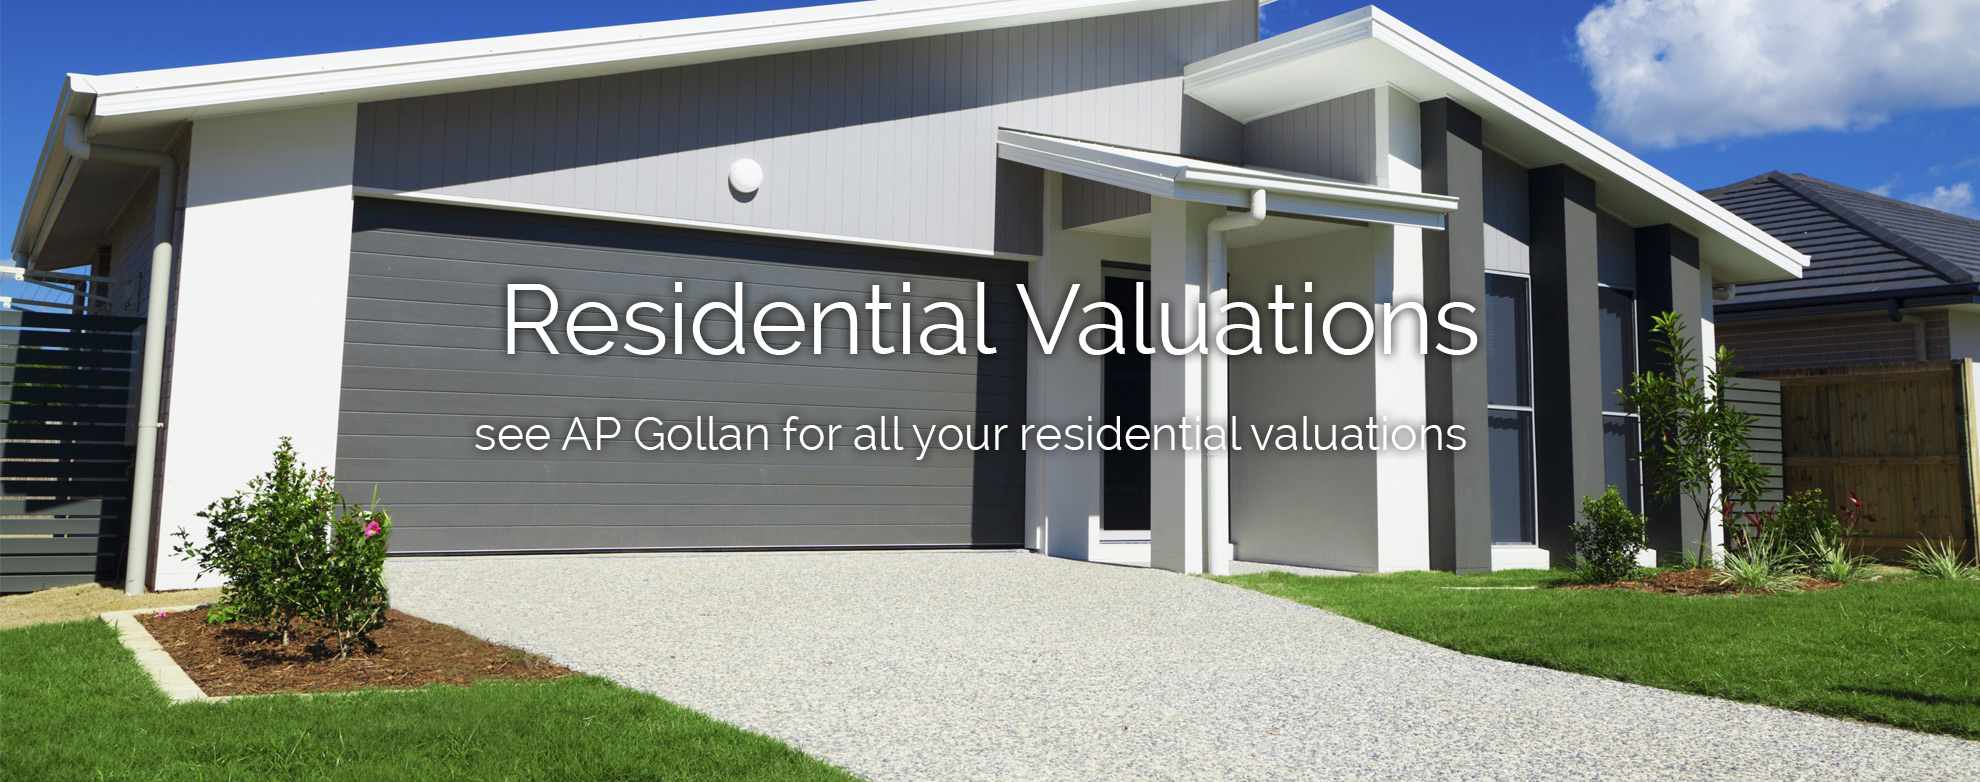 https://apgollanvaluers.nz/wp-content/uploads/2015/03/homepage-residential.jpg